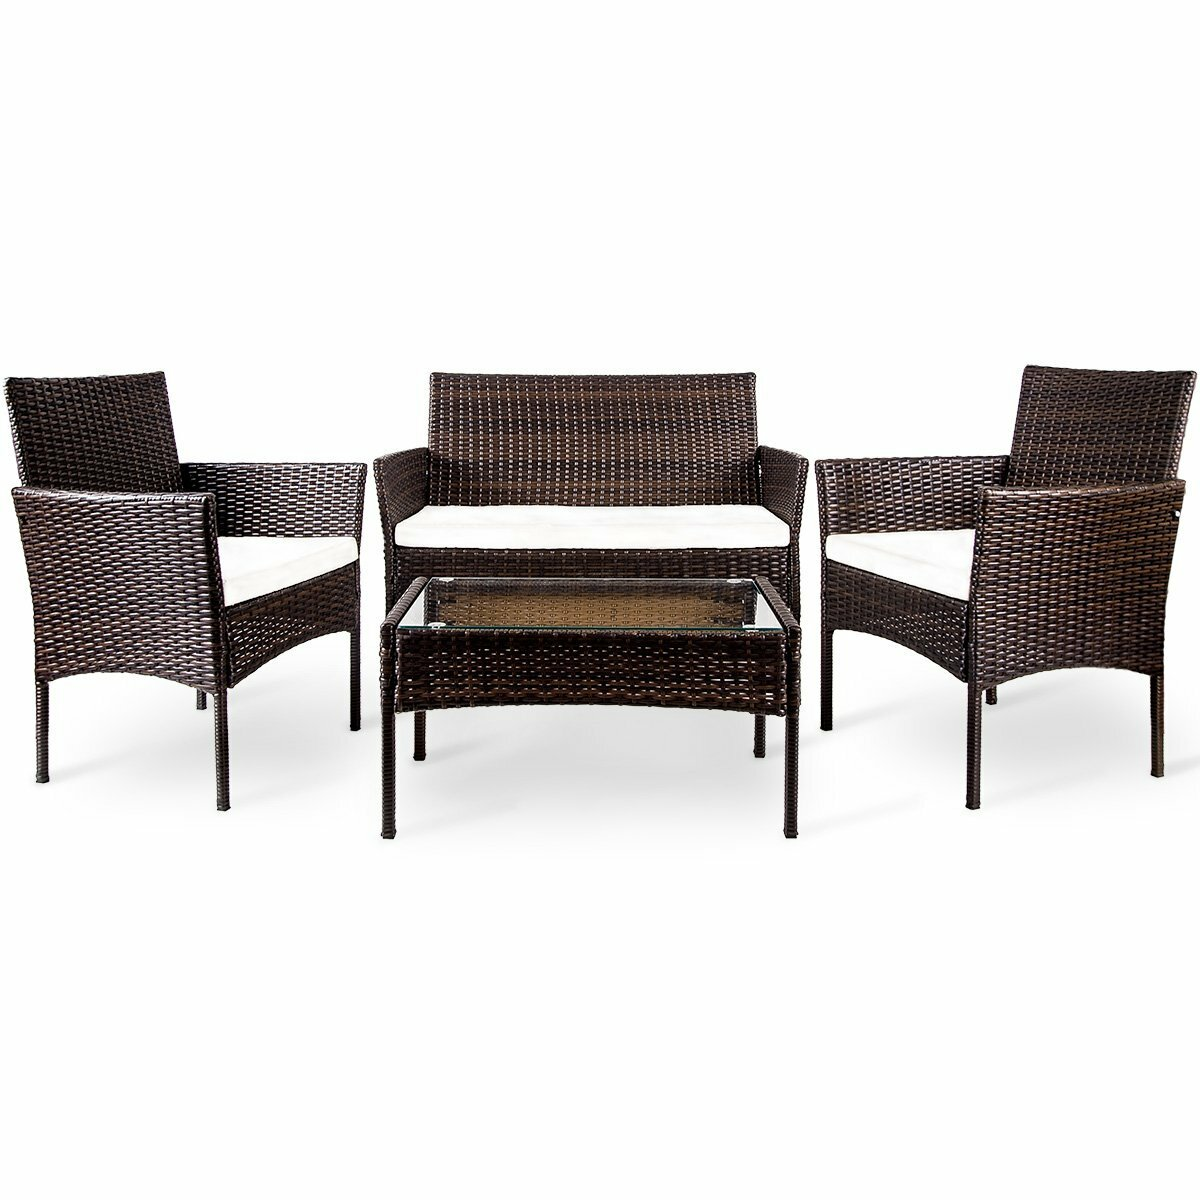 Moro 4 Piece Rattan Sofa Seating Group With Cushions Reviews